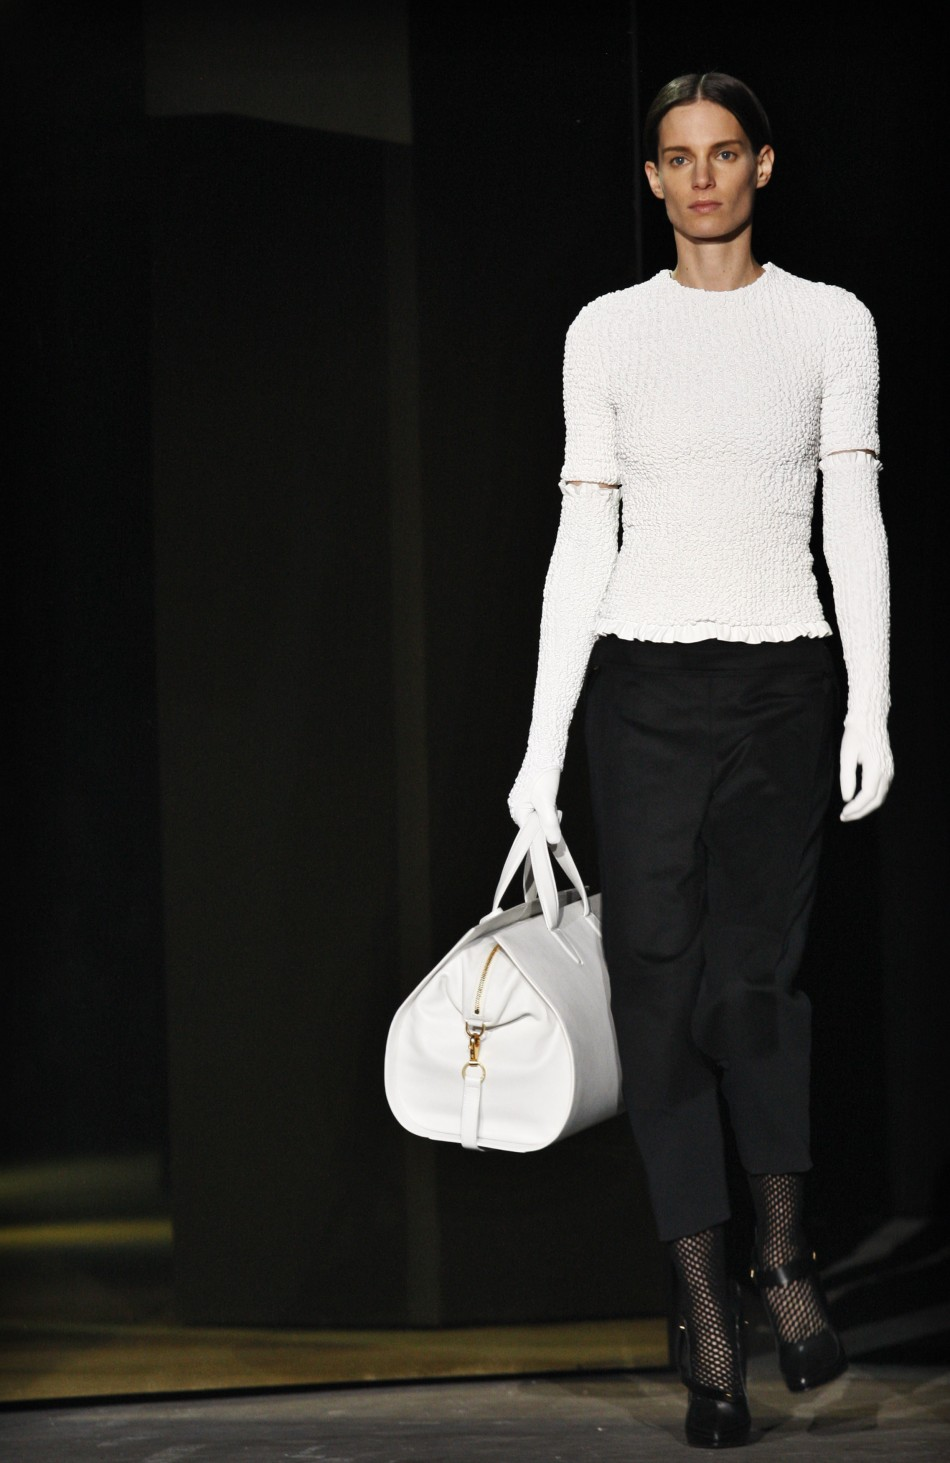 New York Fashion Week 2012- Alexander Wang